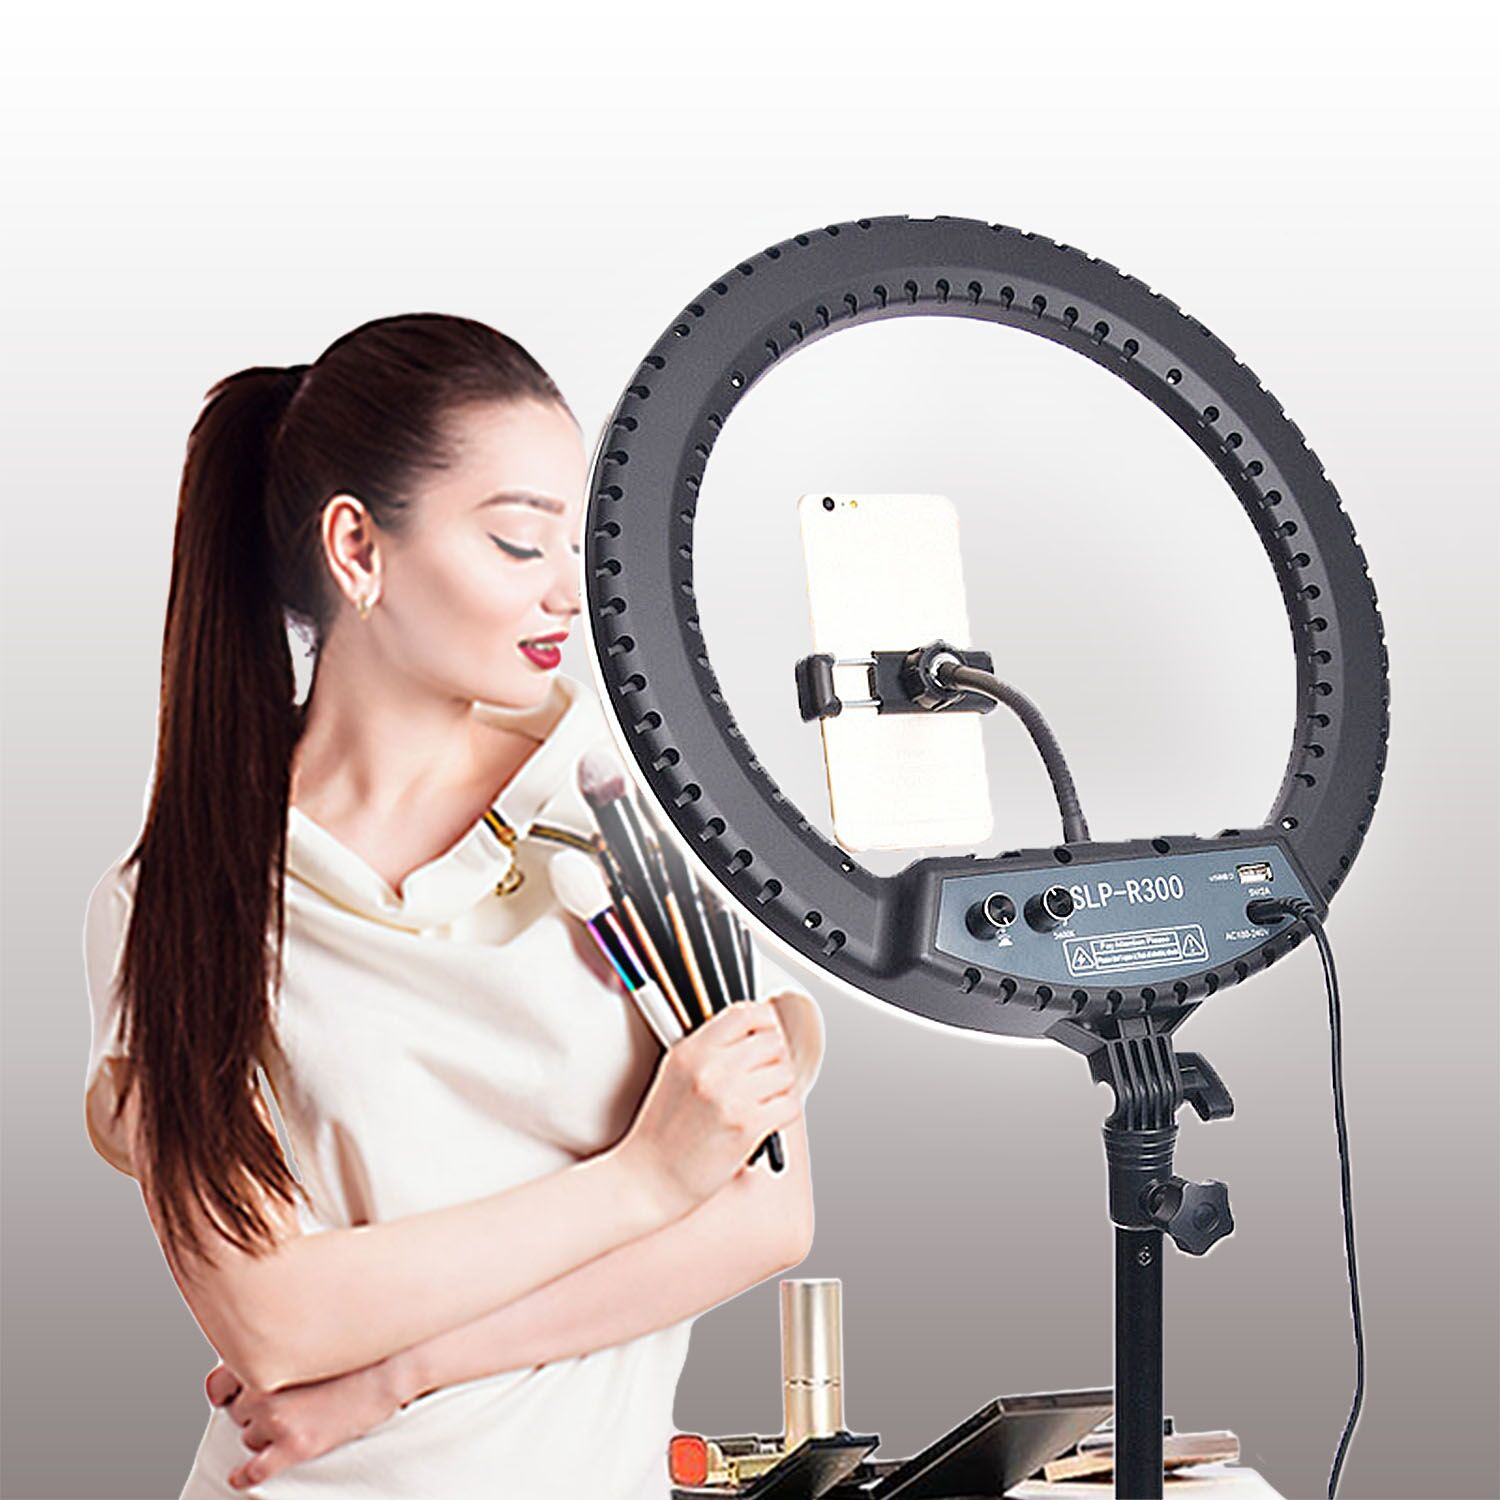 H5d44f780a8274a4899d0c1e92b79e8caK fosoto LED Ring Light Selfie Photo Photography Lighting Ringlight lamp With Tripod Stand For Photo Studio Makeup Video Live Show